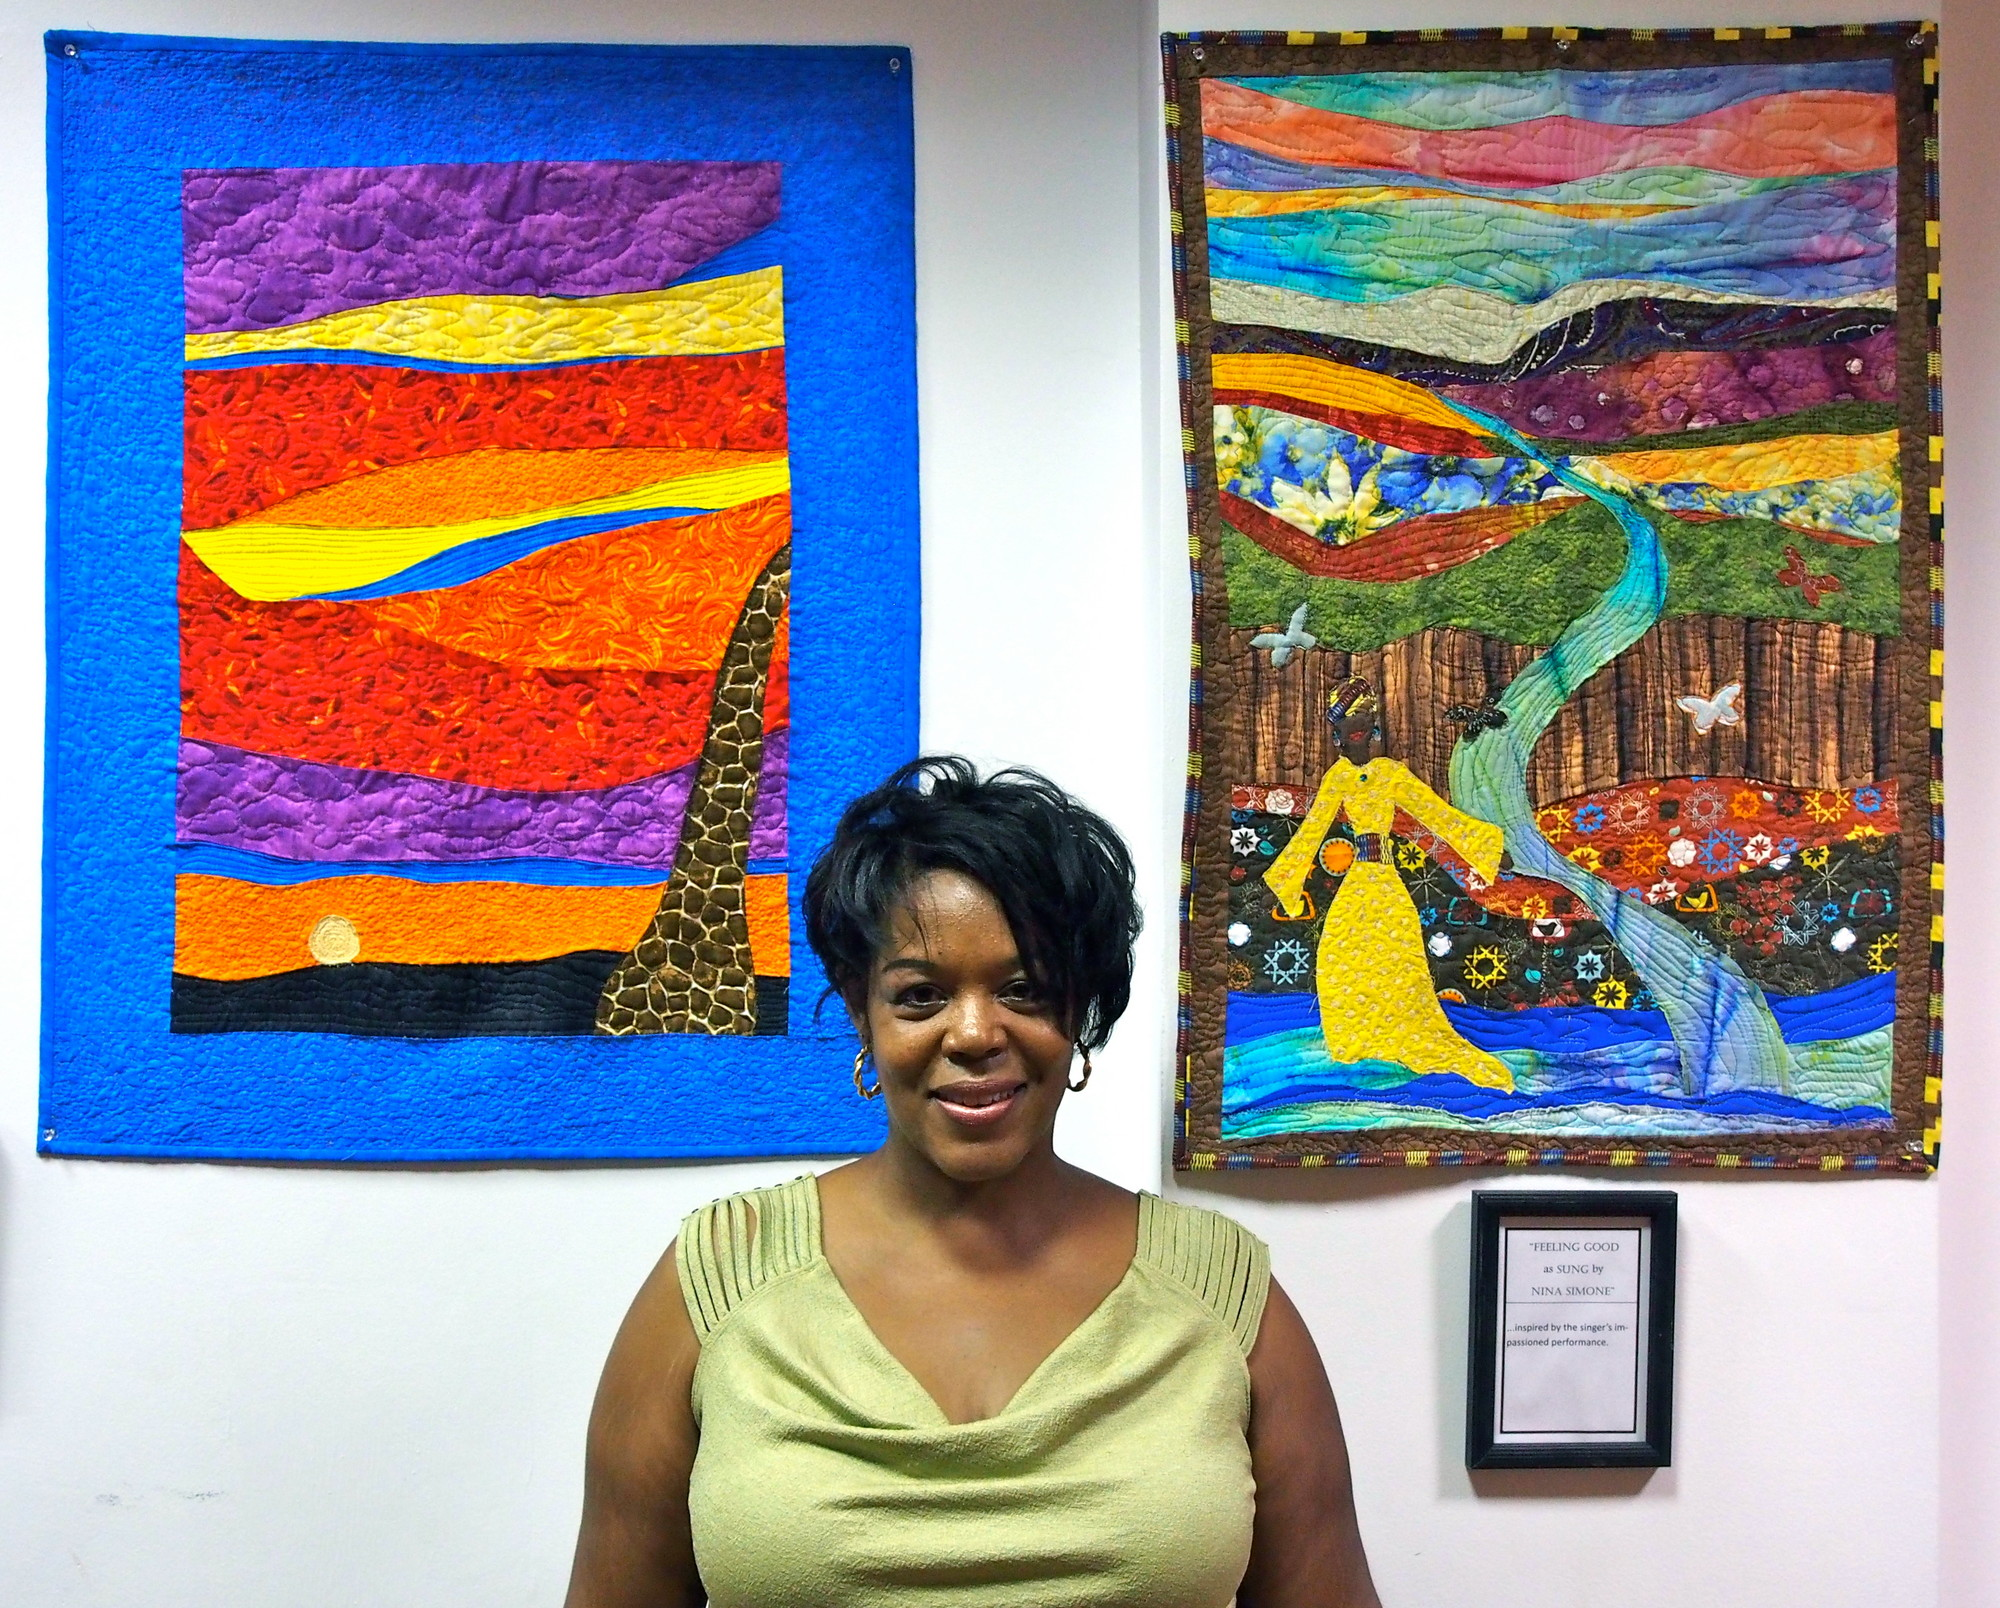 Kim Taylor, a quilting artist and former Baldwin Board of Education trustee, is 